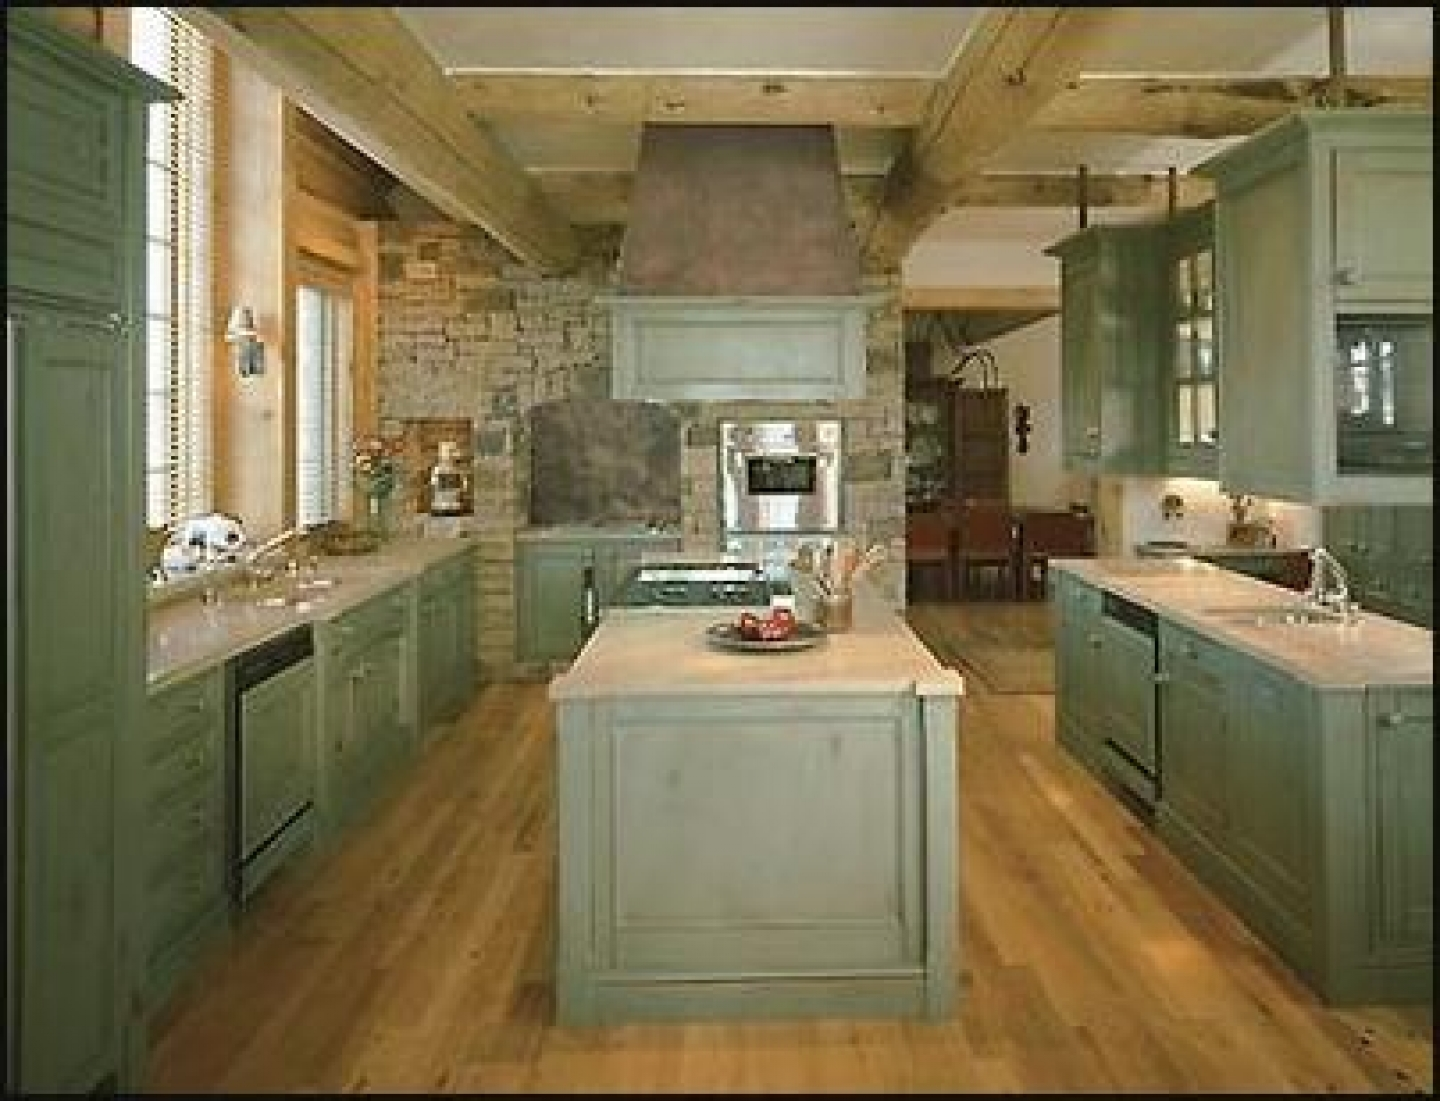 Kitchen Interior Idea photo - 7